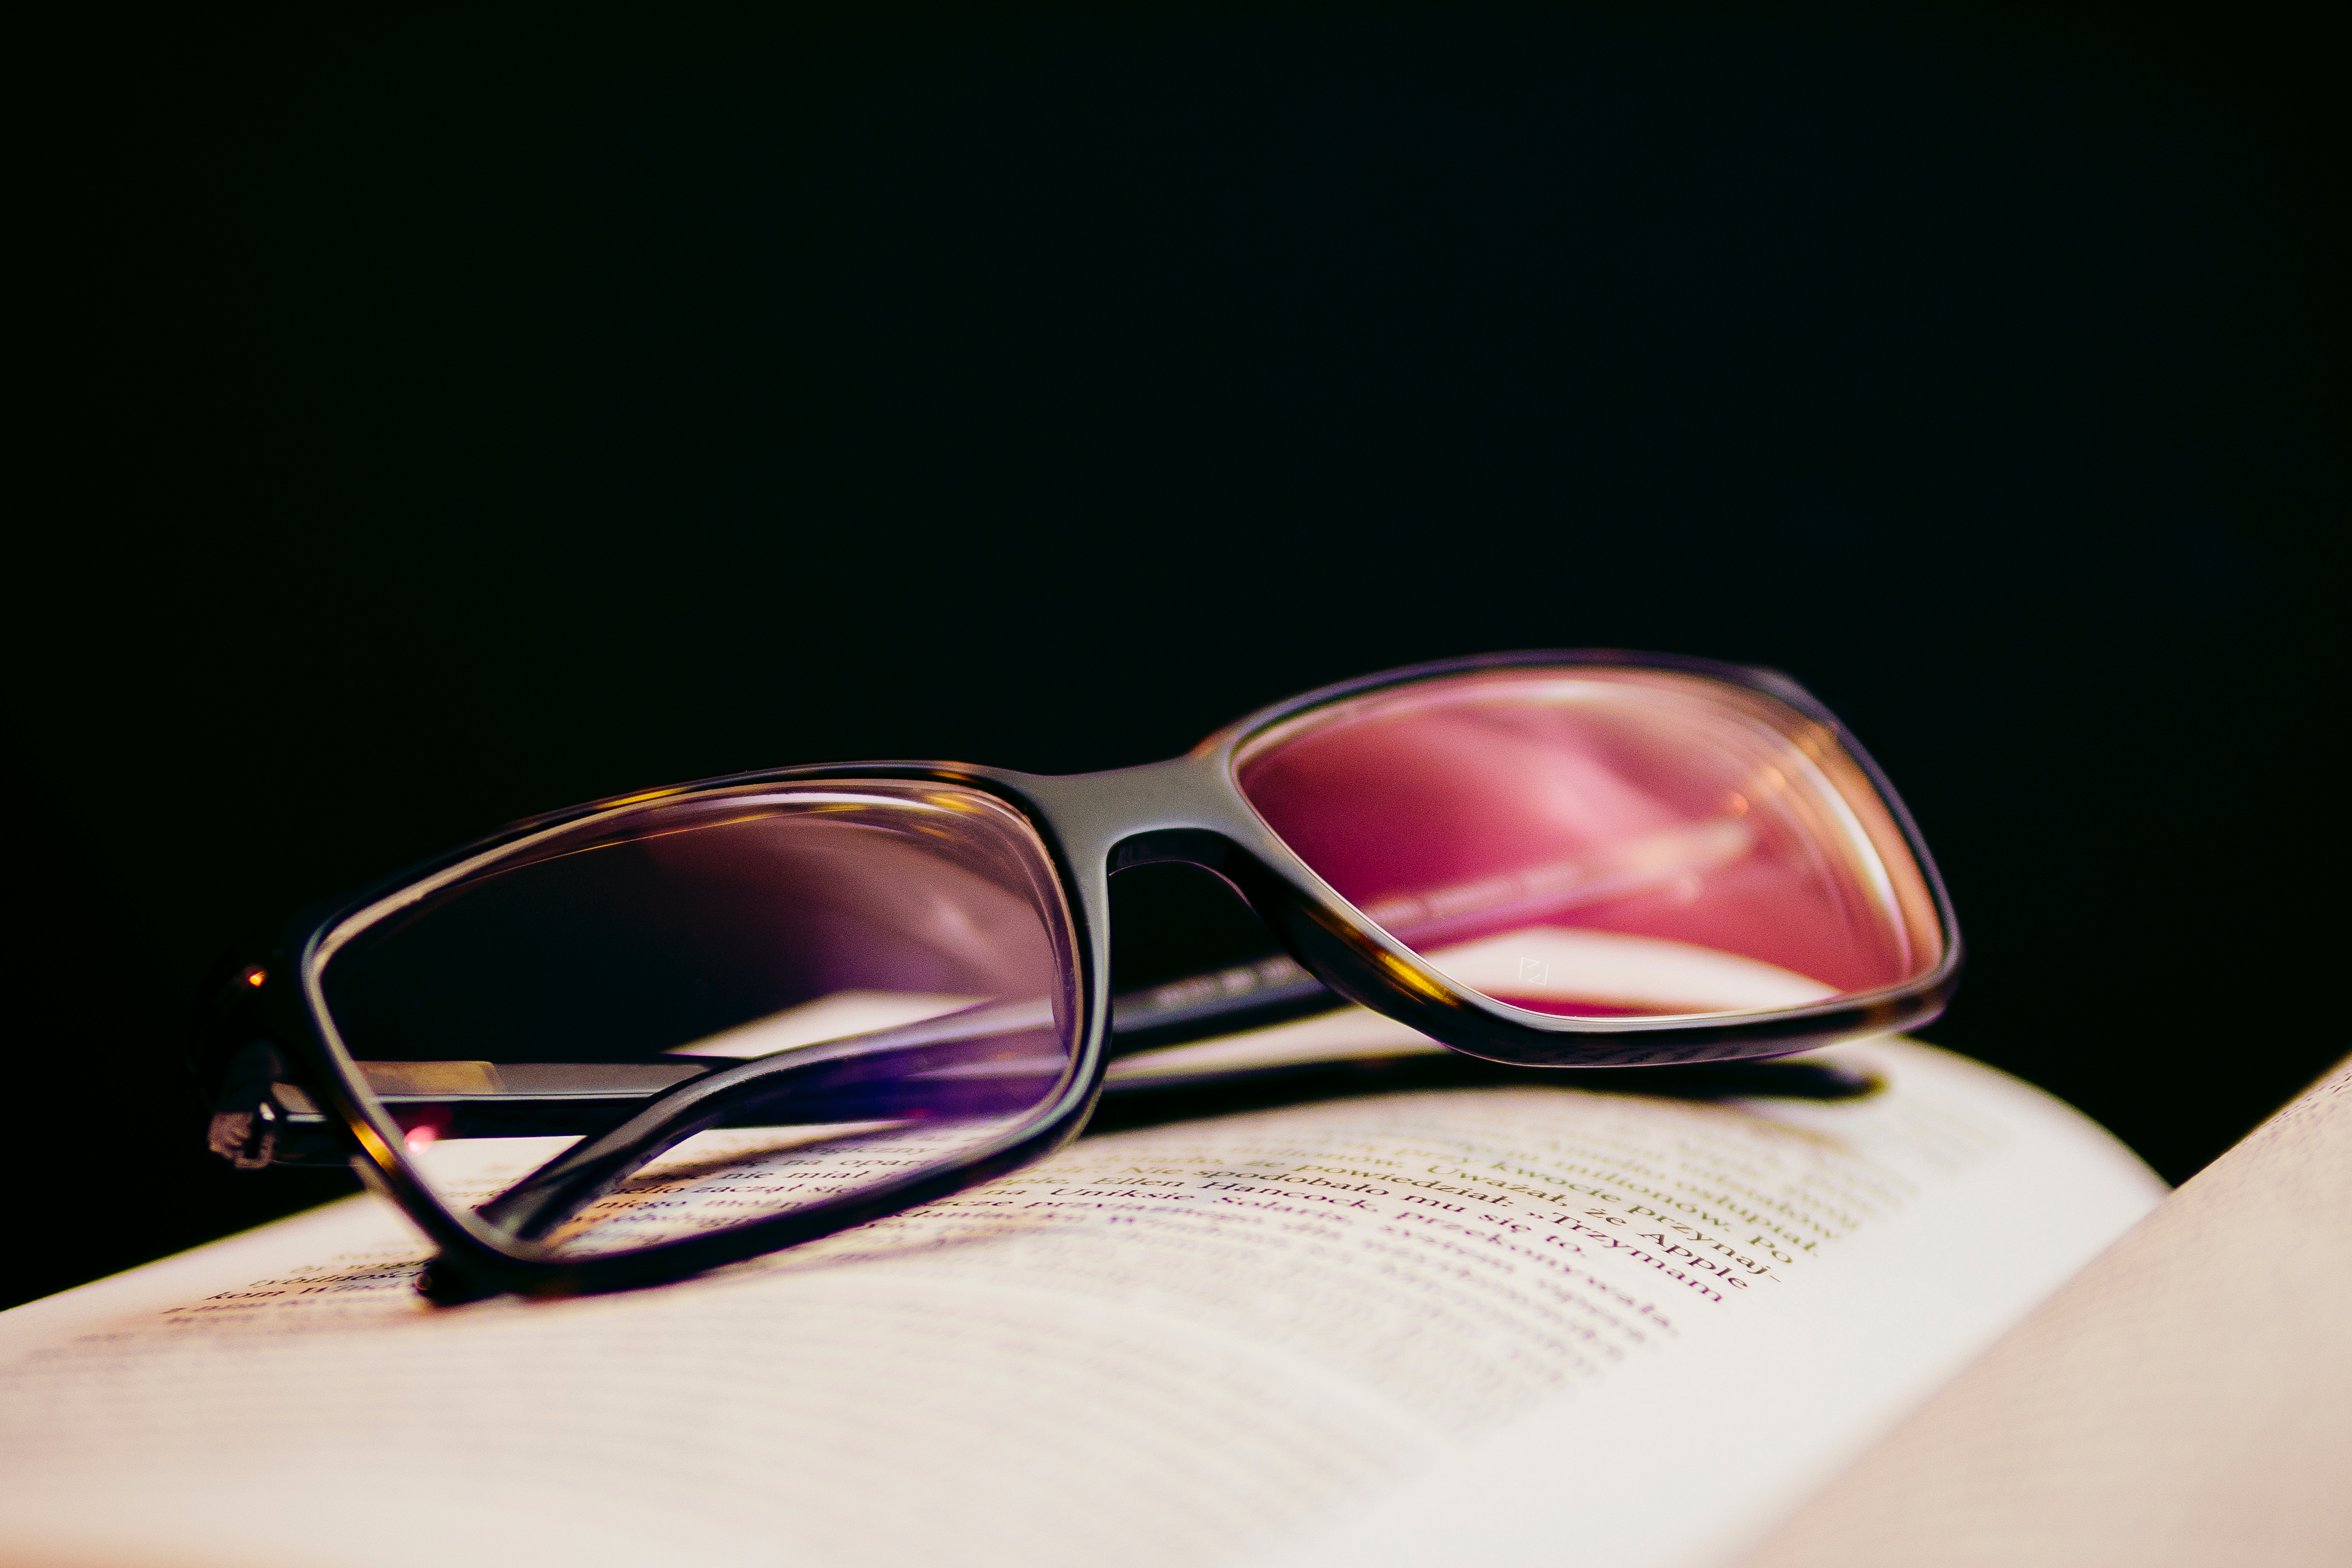 74219 download wallpaper Miscellanea, Miscellaneous, Glasses, Spectacles, Diopter, Lenses, Book screensavers and pictures for free